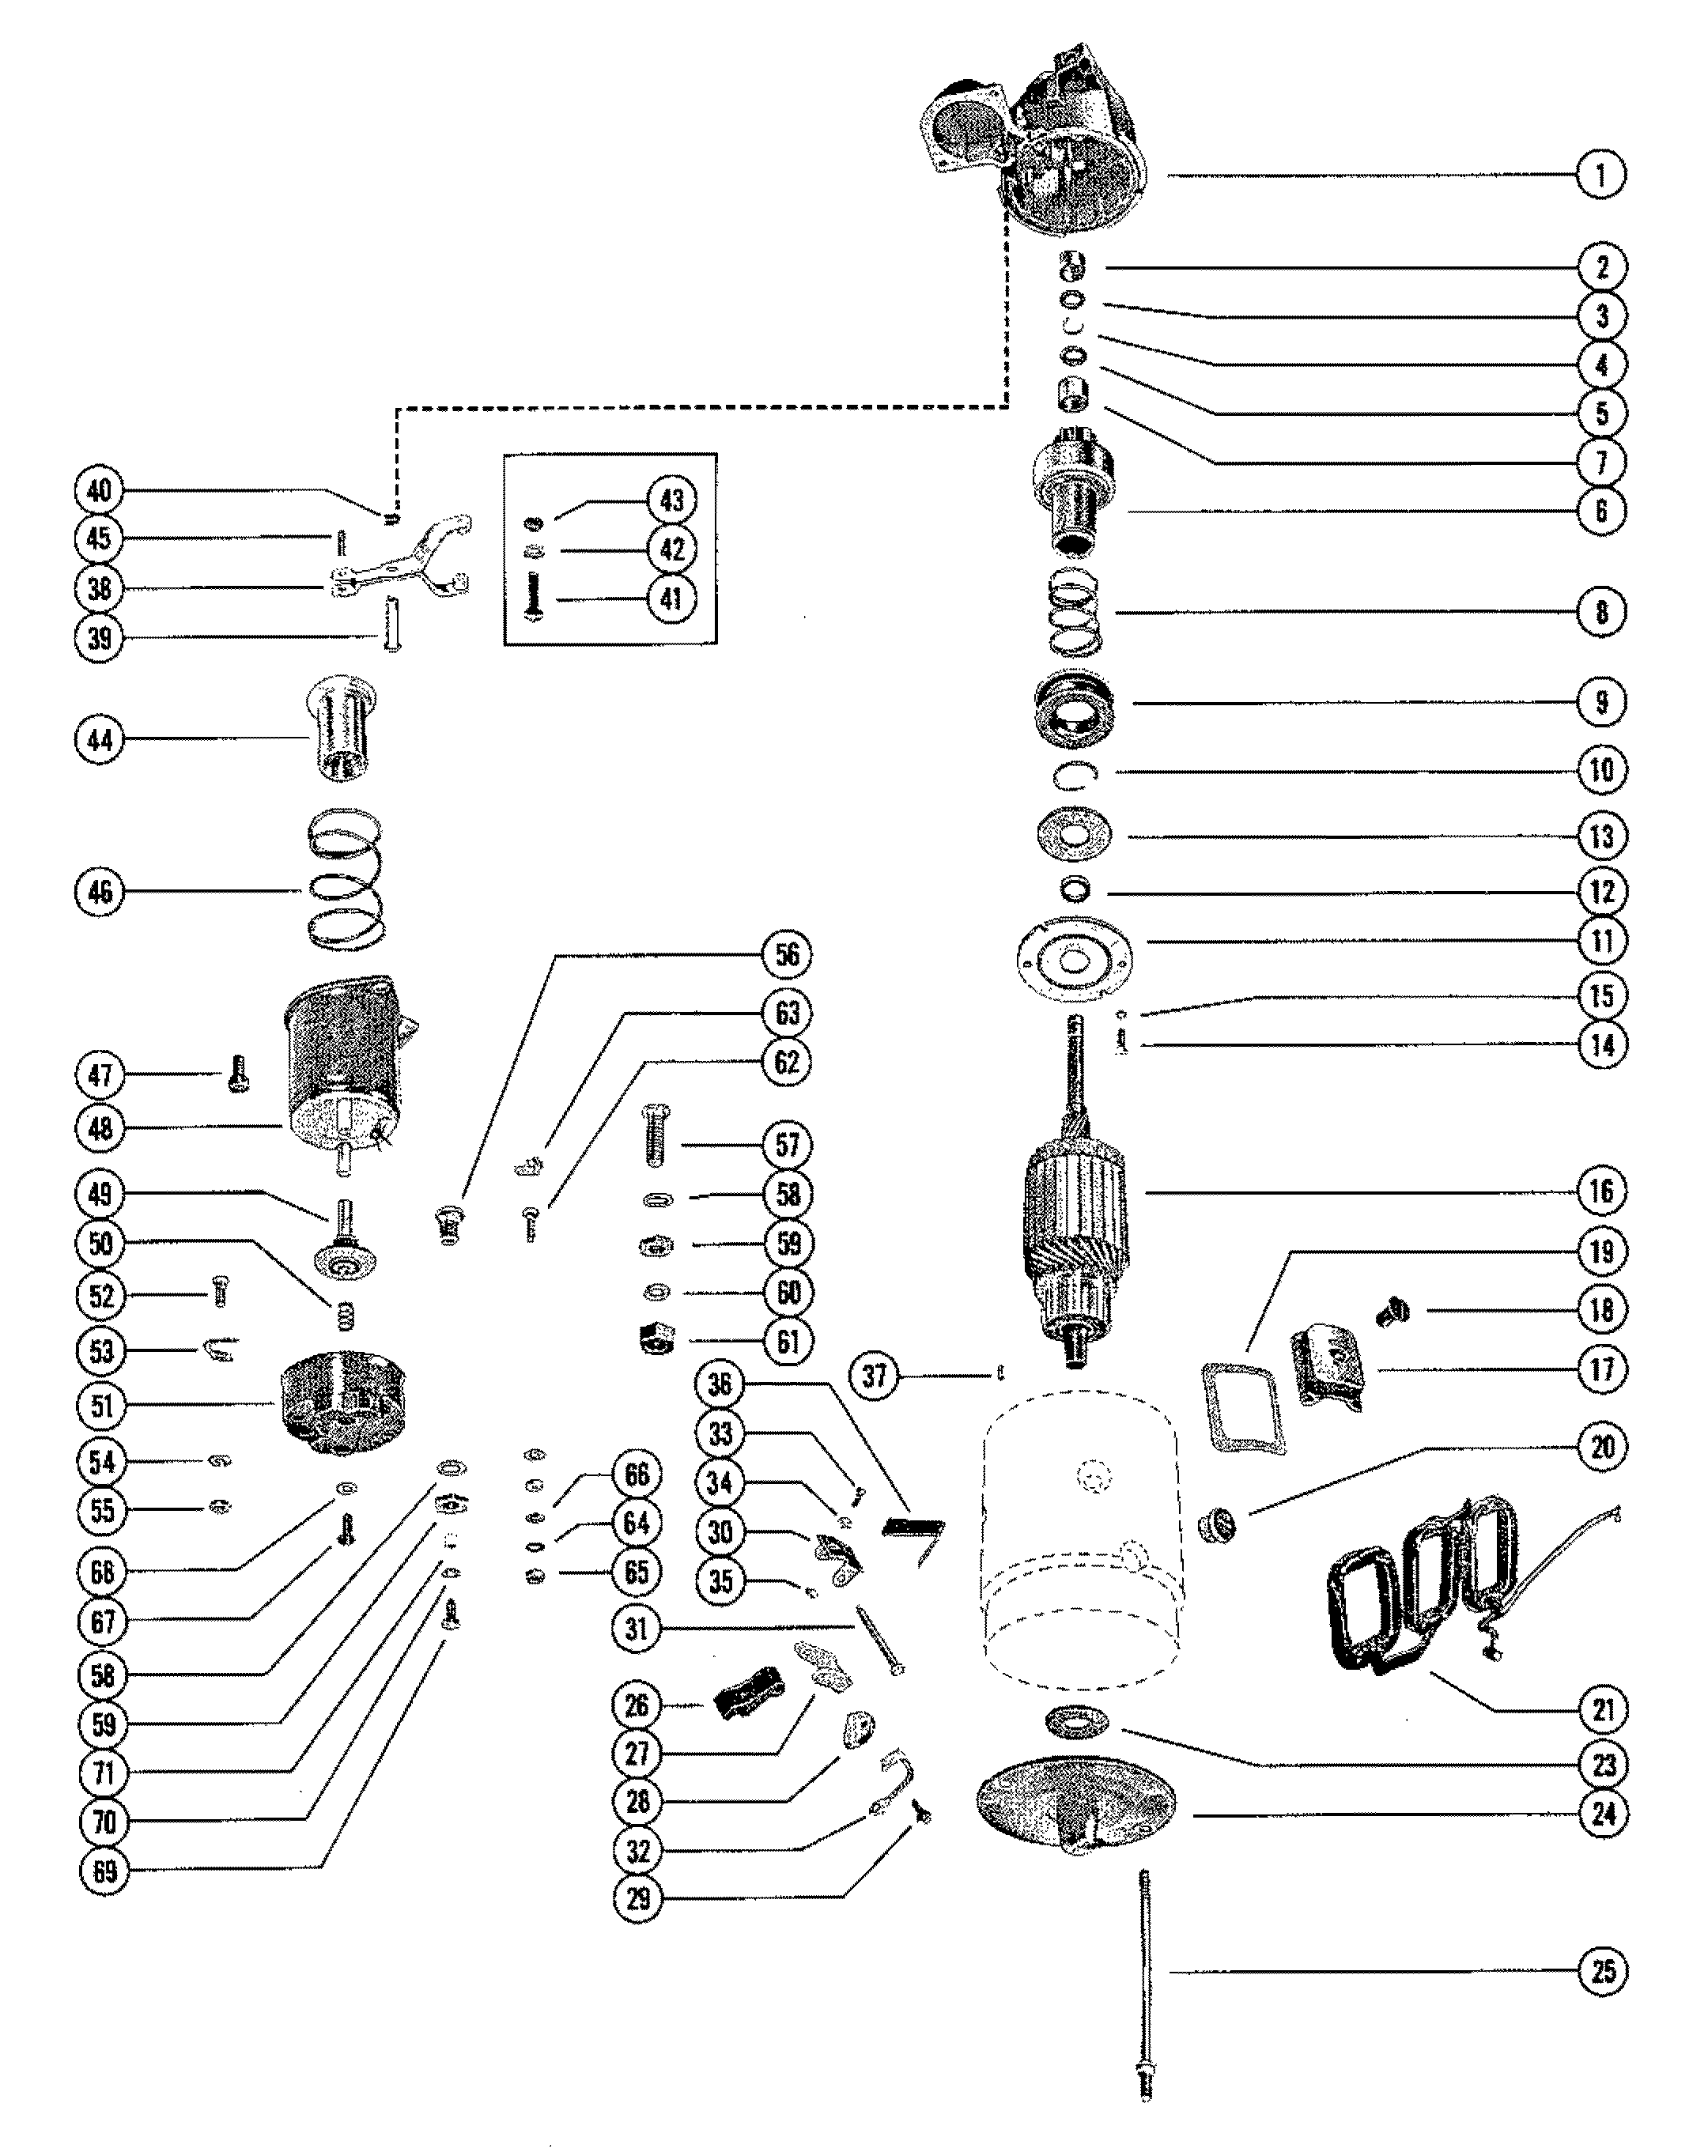 2004 audi s4 radio wiring diagram